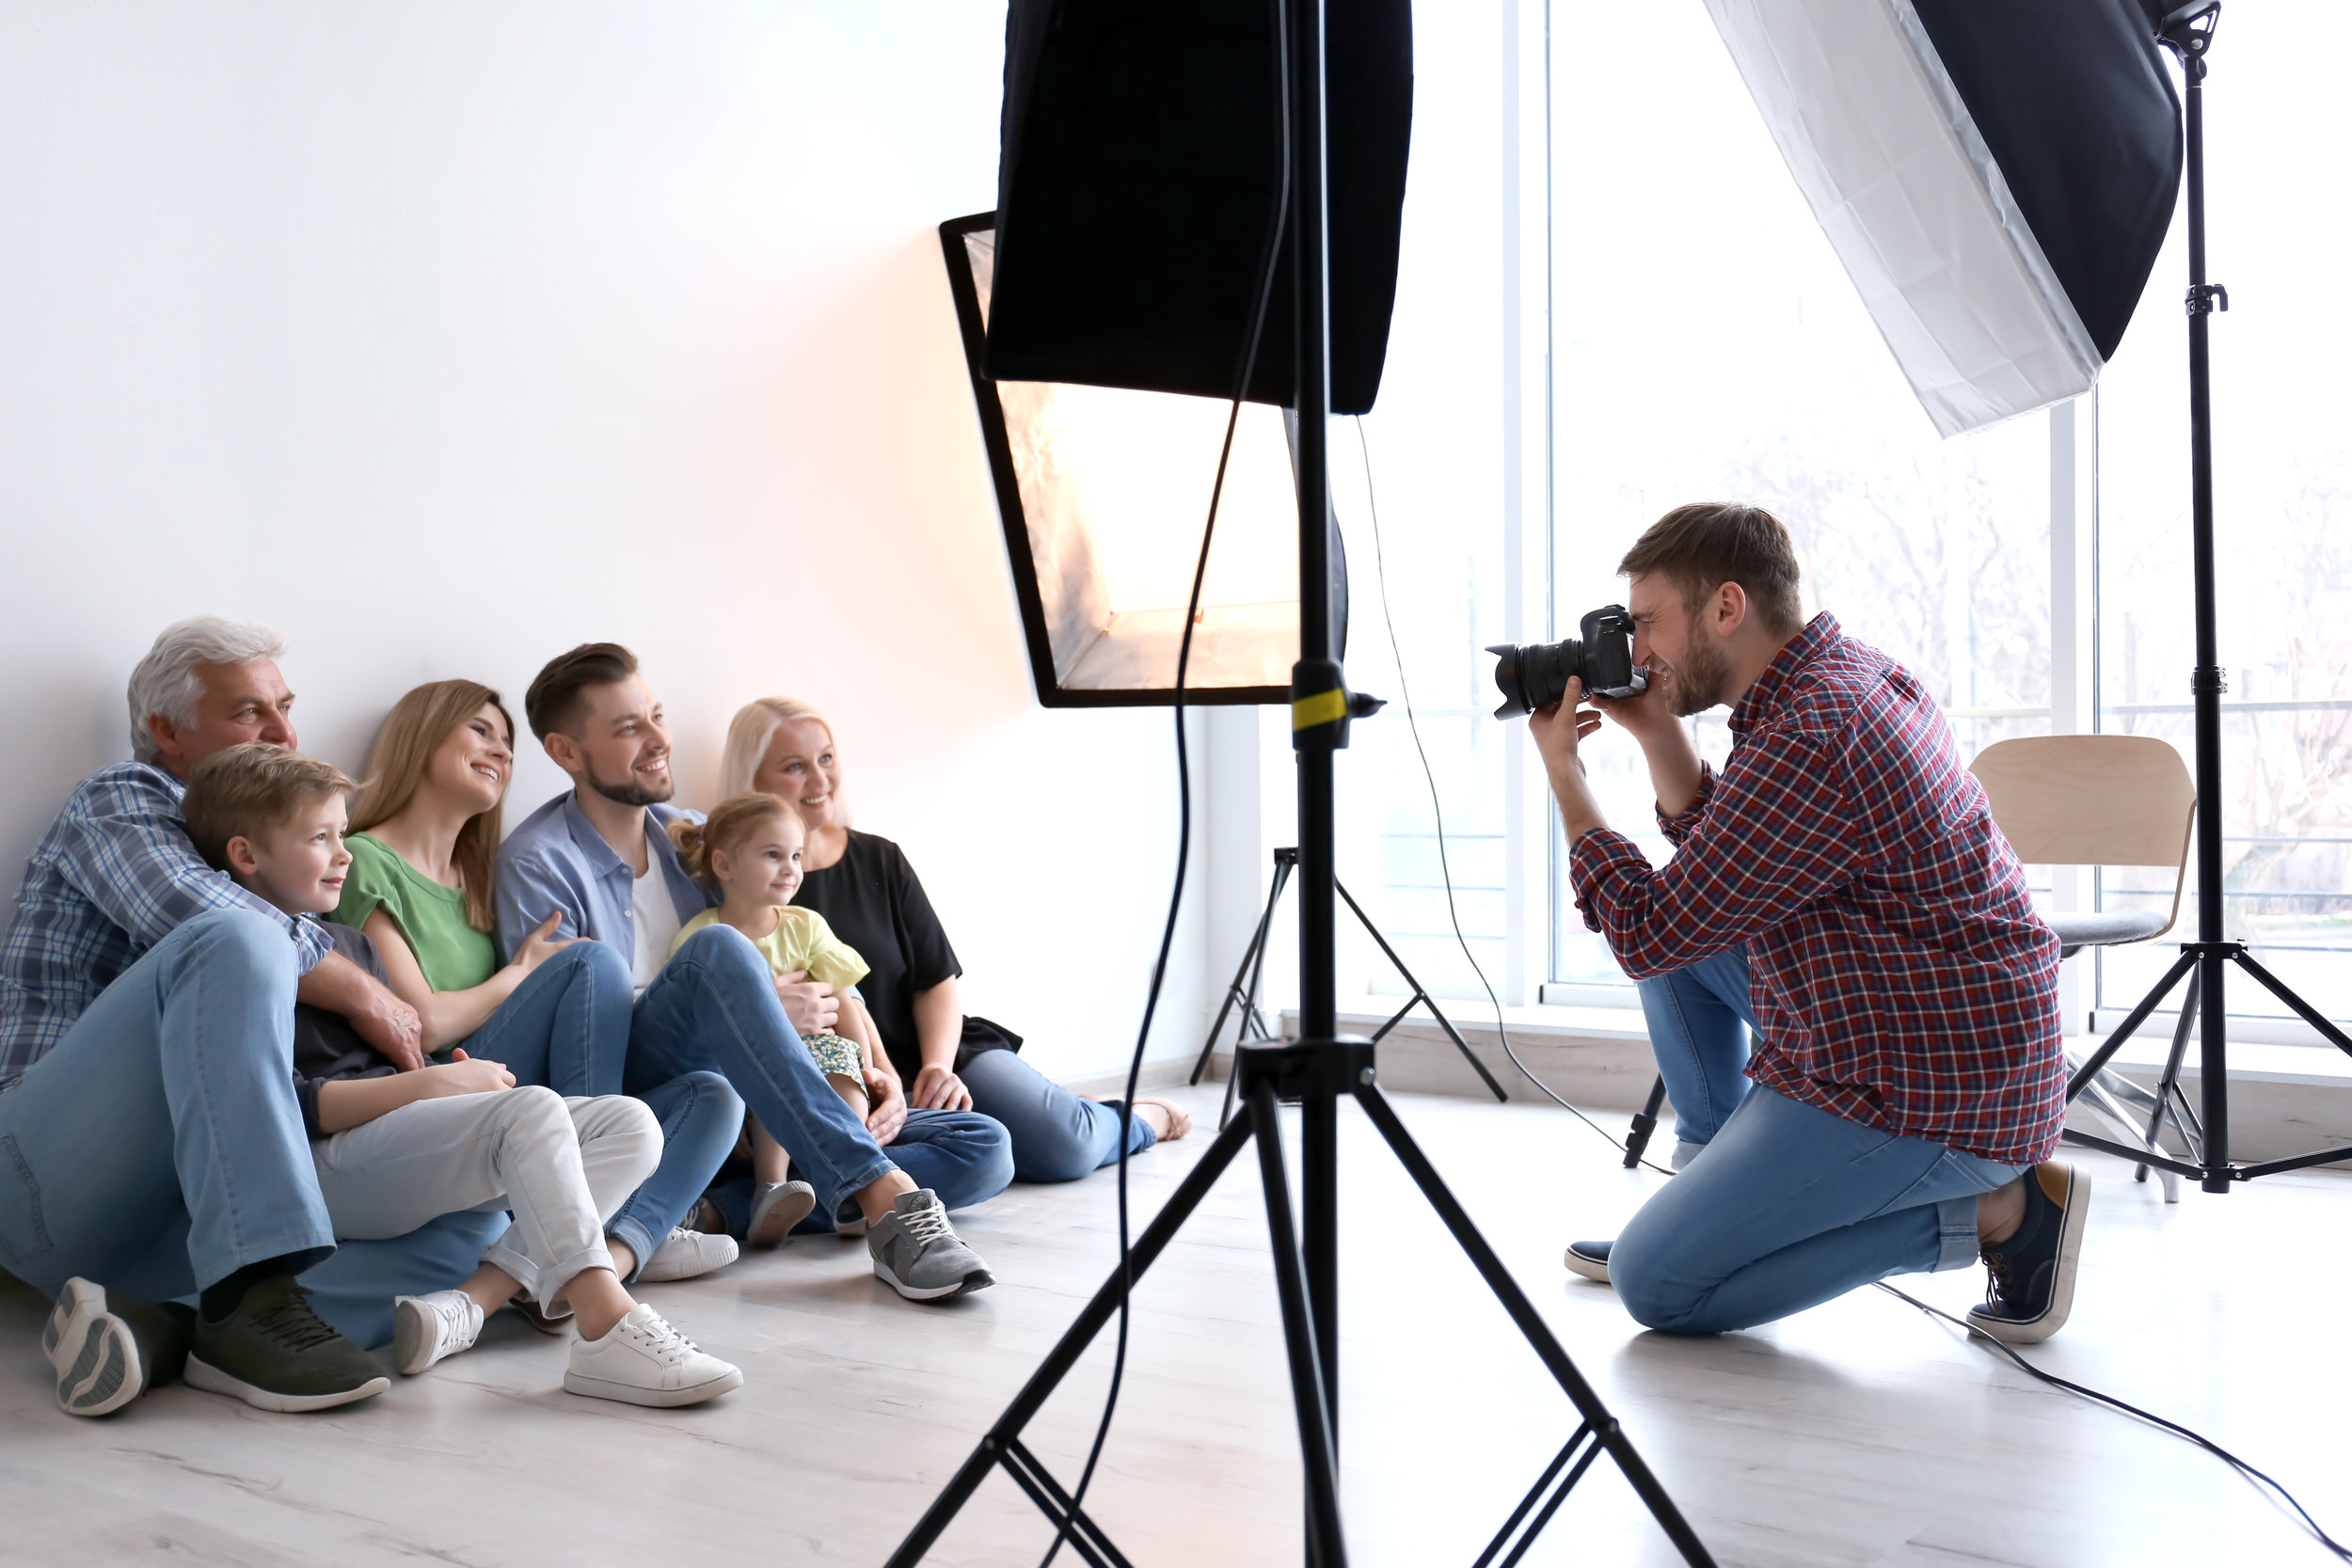 KNICKERBOCKERS IS HIRING! - Seeking highly motivated portrait photographers with 1-2+ years experience